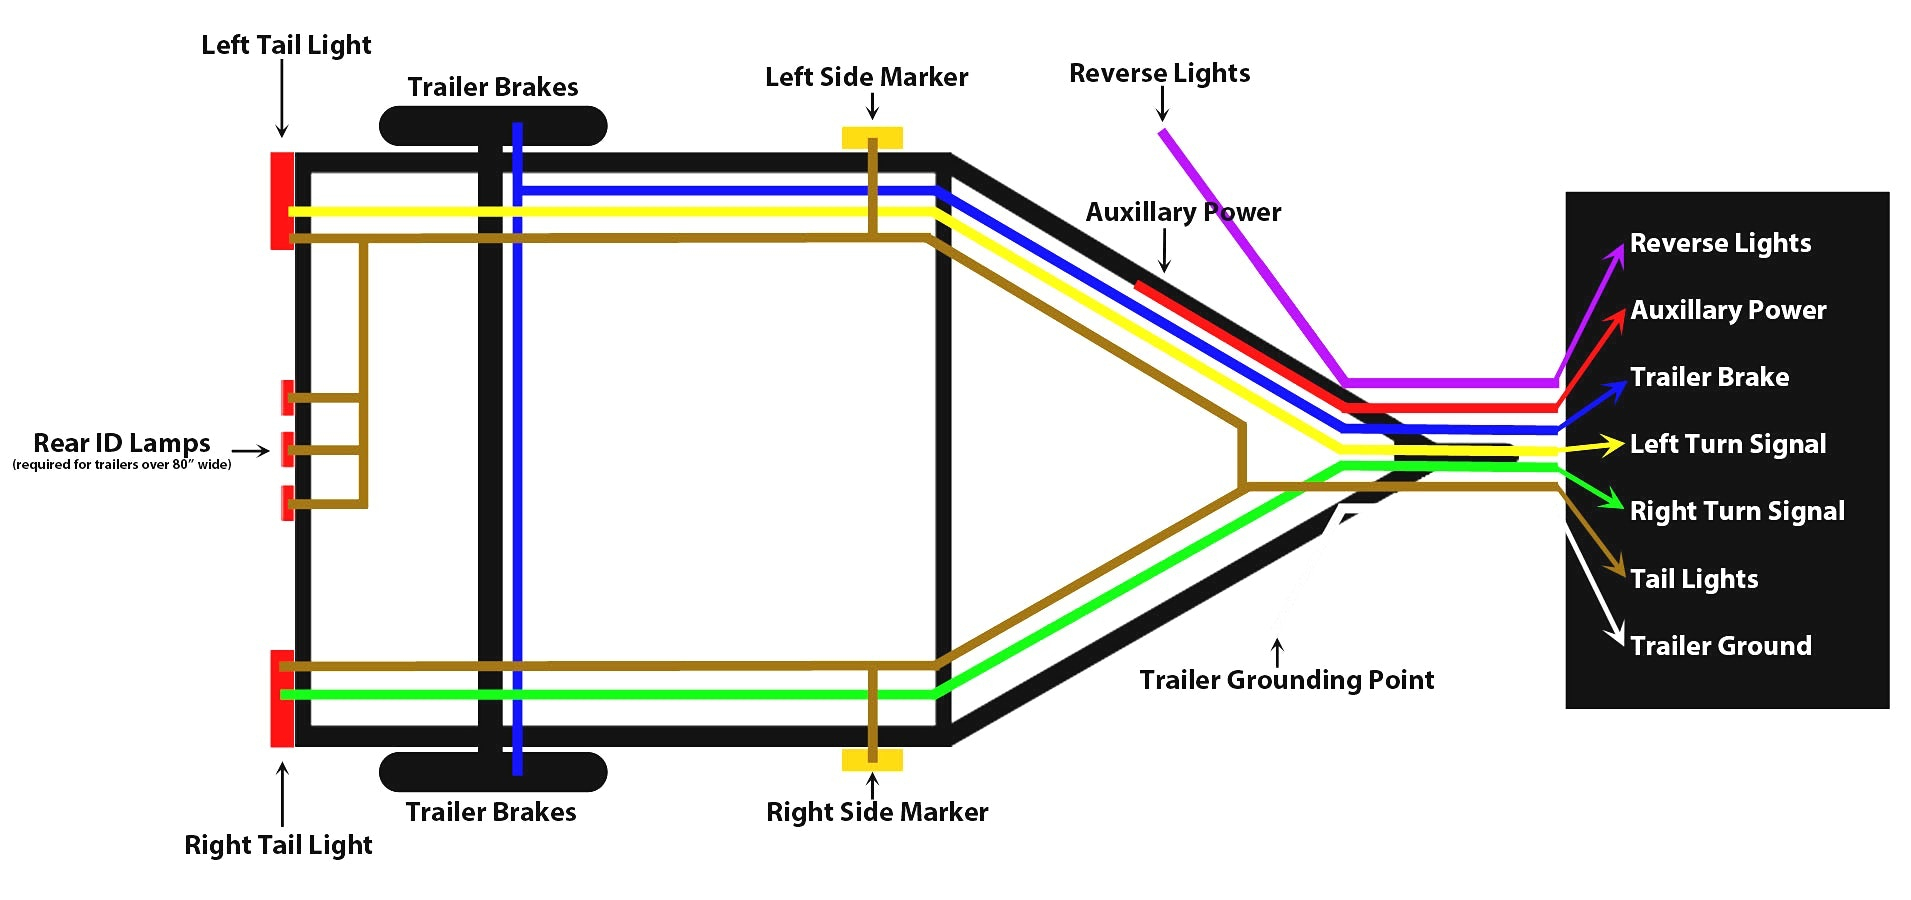 Wiring Diagram For 7 Way Trailer Connector - Deltagenerali - 4 Pin Trailer Plug Wiring Diagram